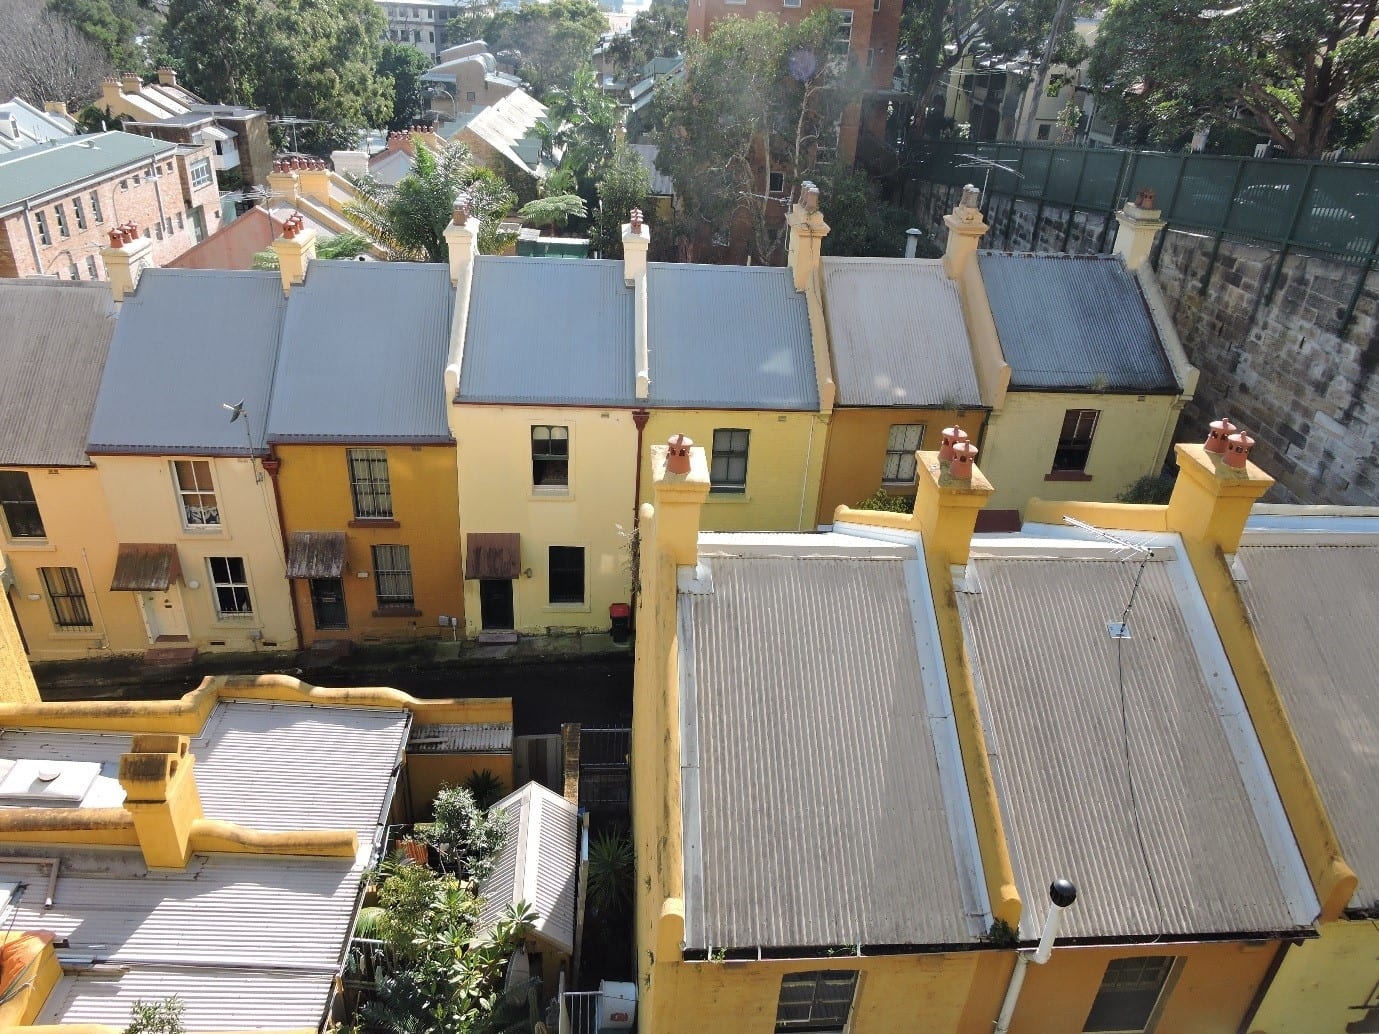 Fig.1 - Heritage houses in Woolloomooloo, NSW - Australia